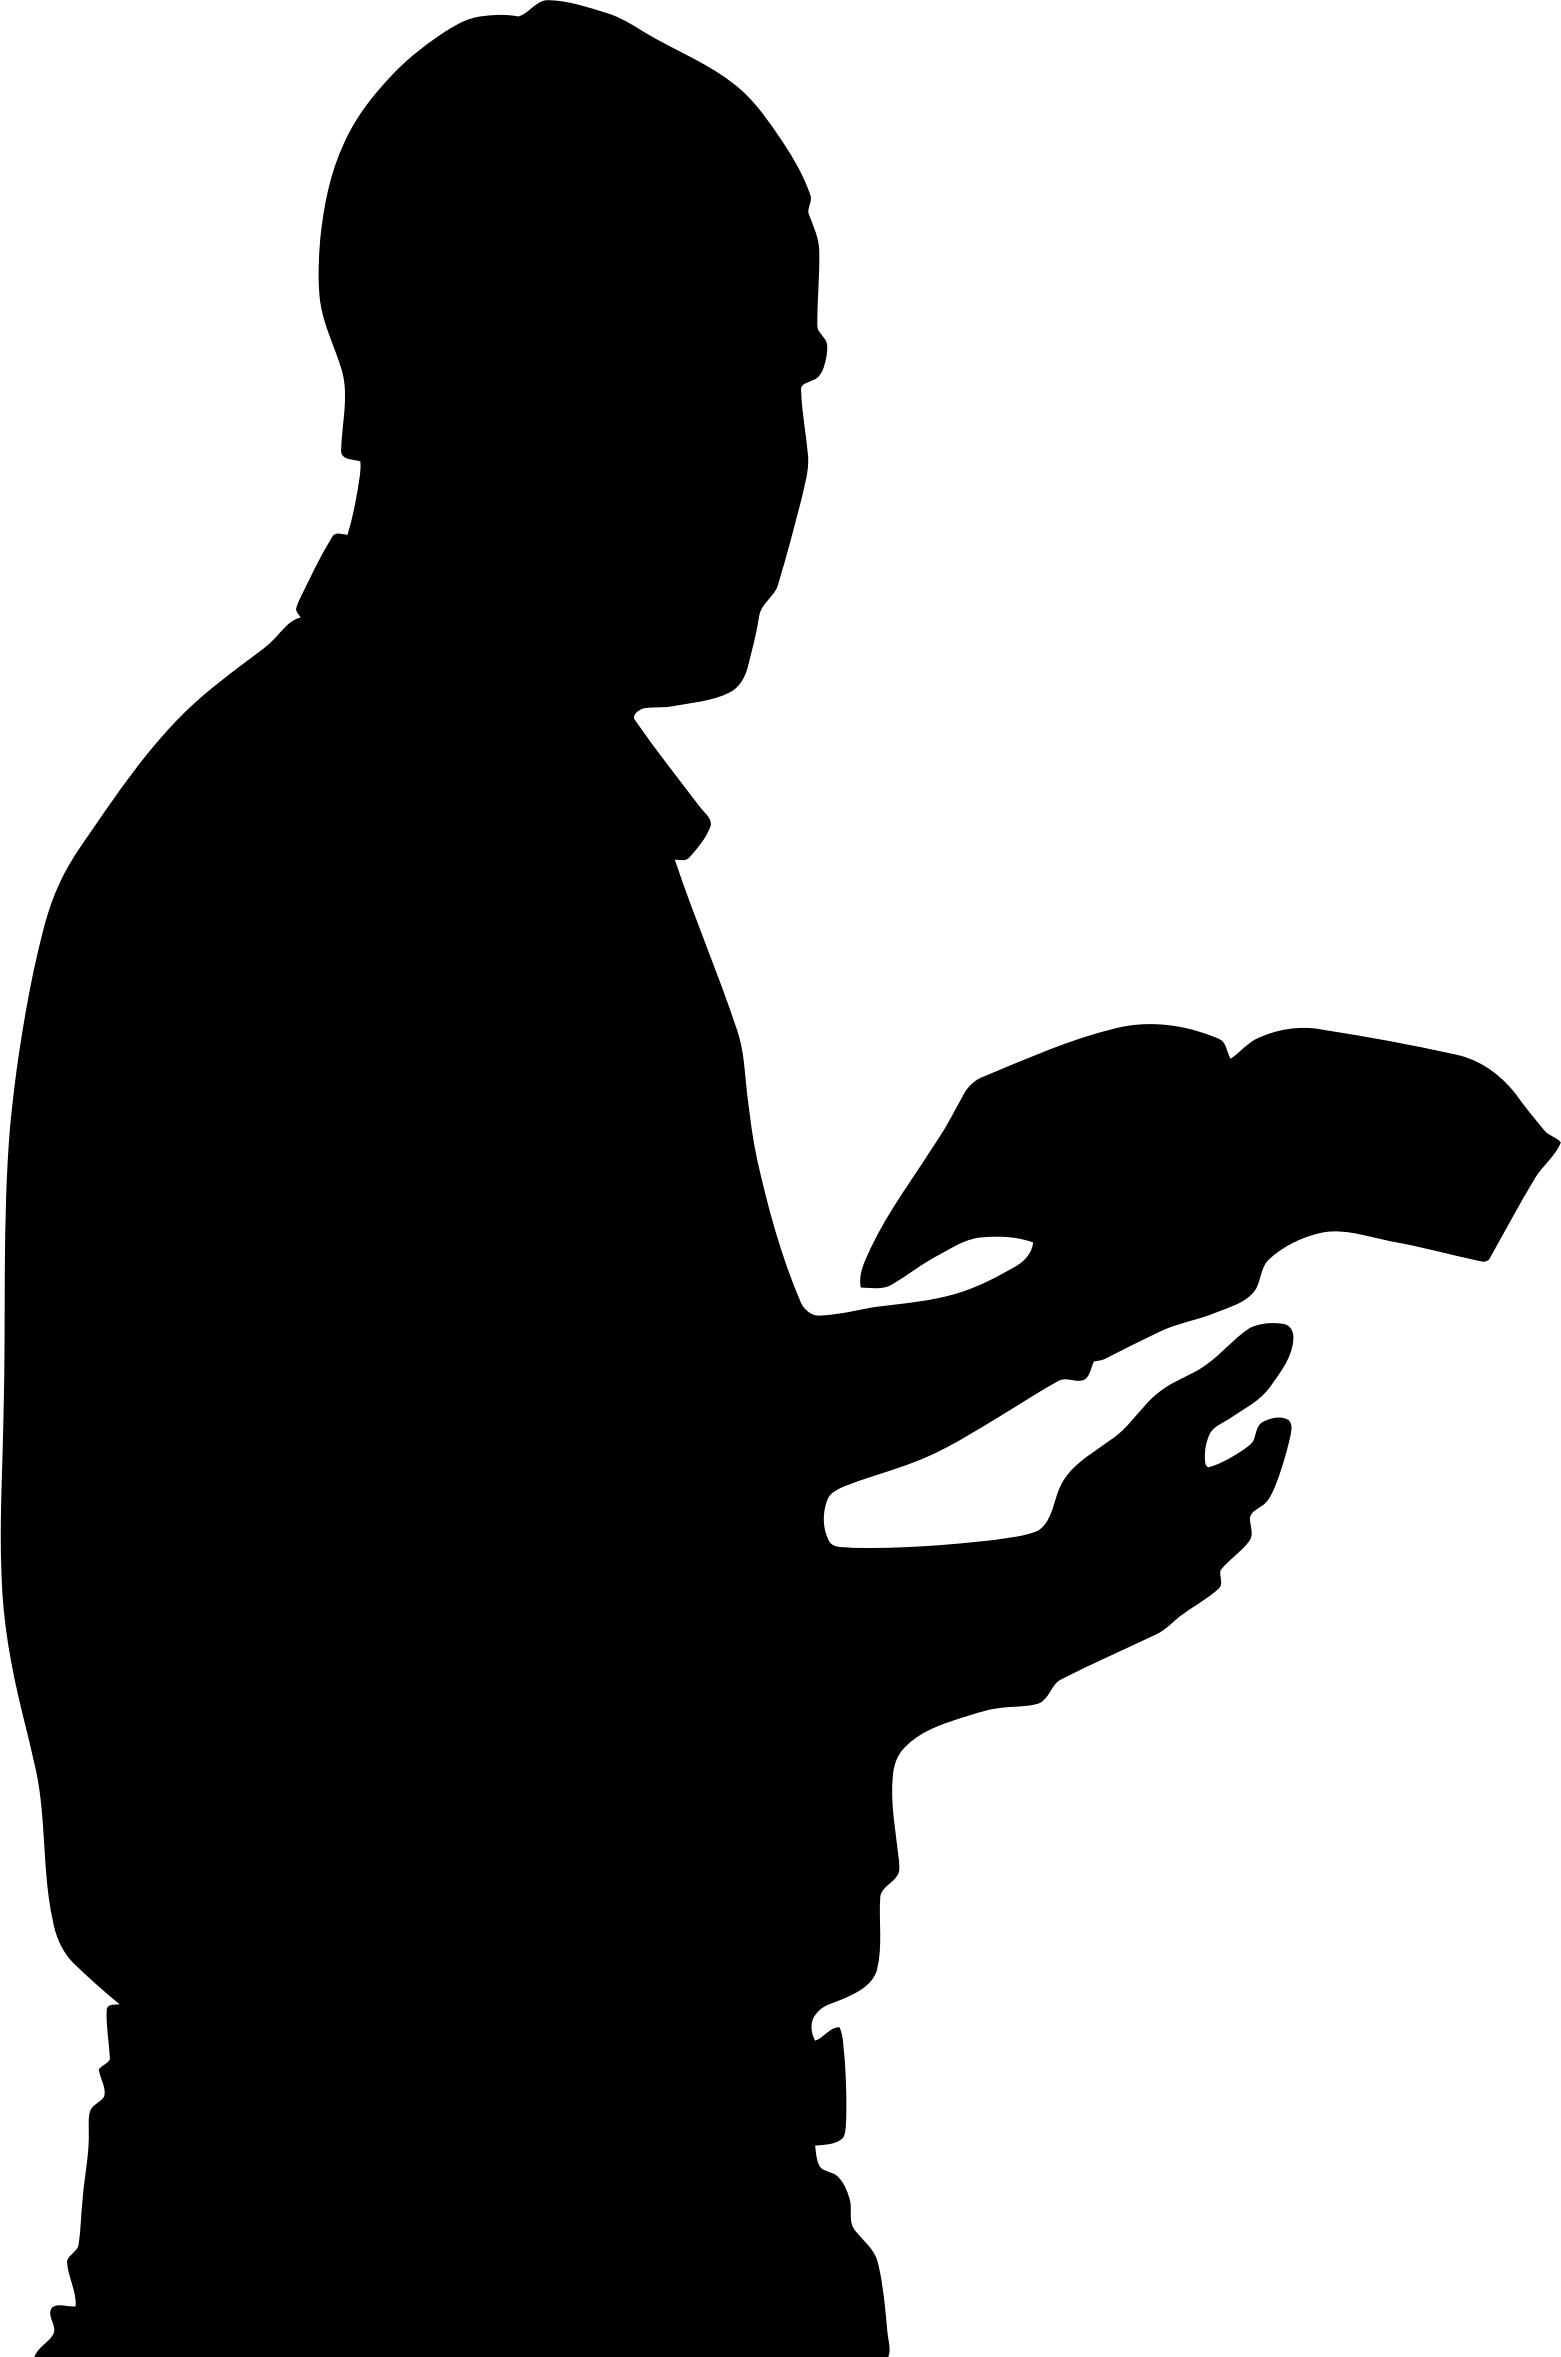 1561x2357 Man With Bible In Hand Silhouette Icons Png